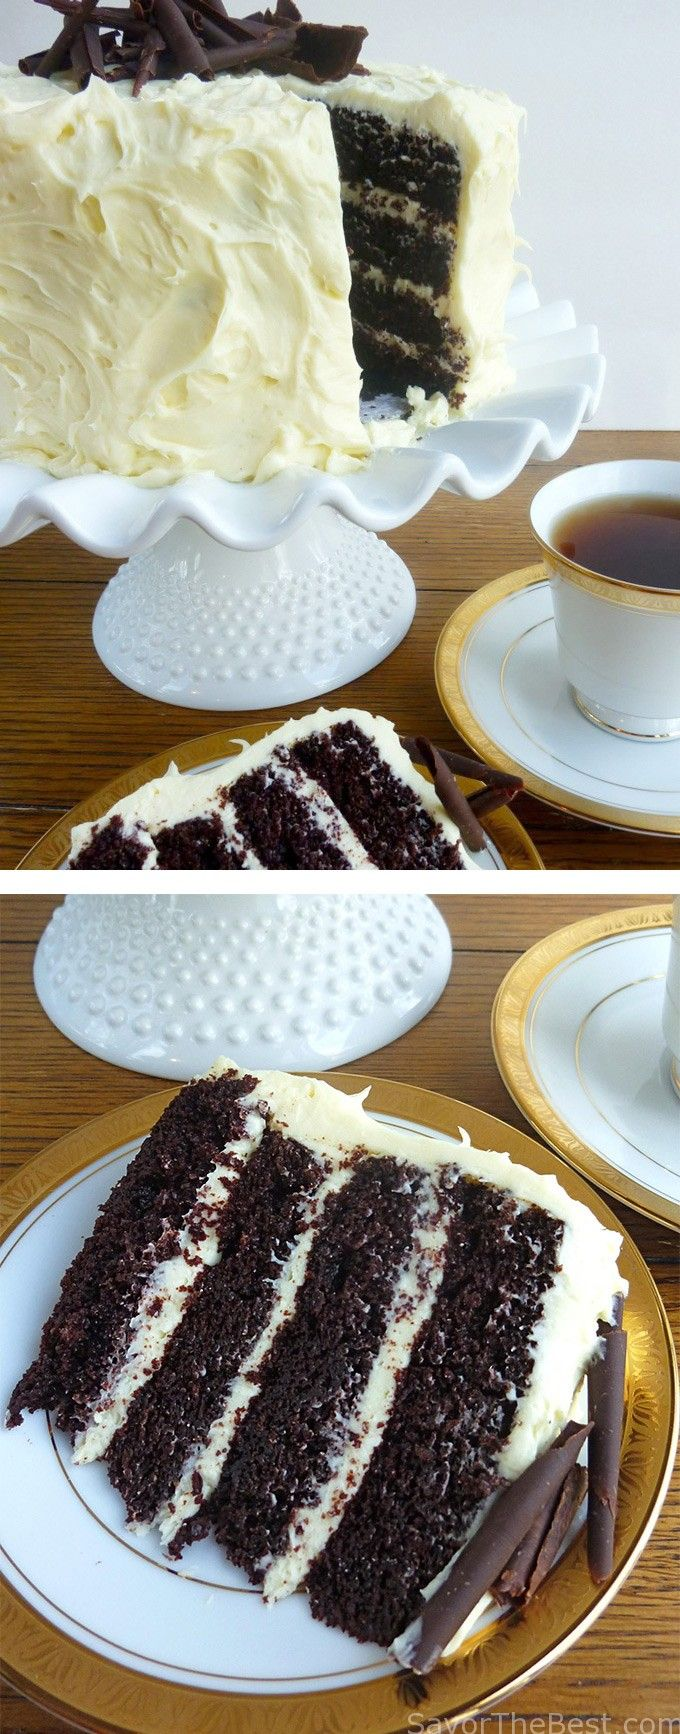 Intense Chocolate Cake with Cream Cheese Frosting